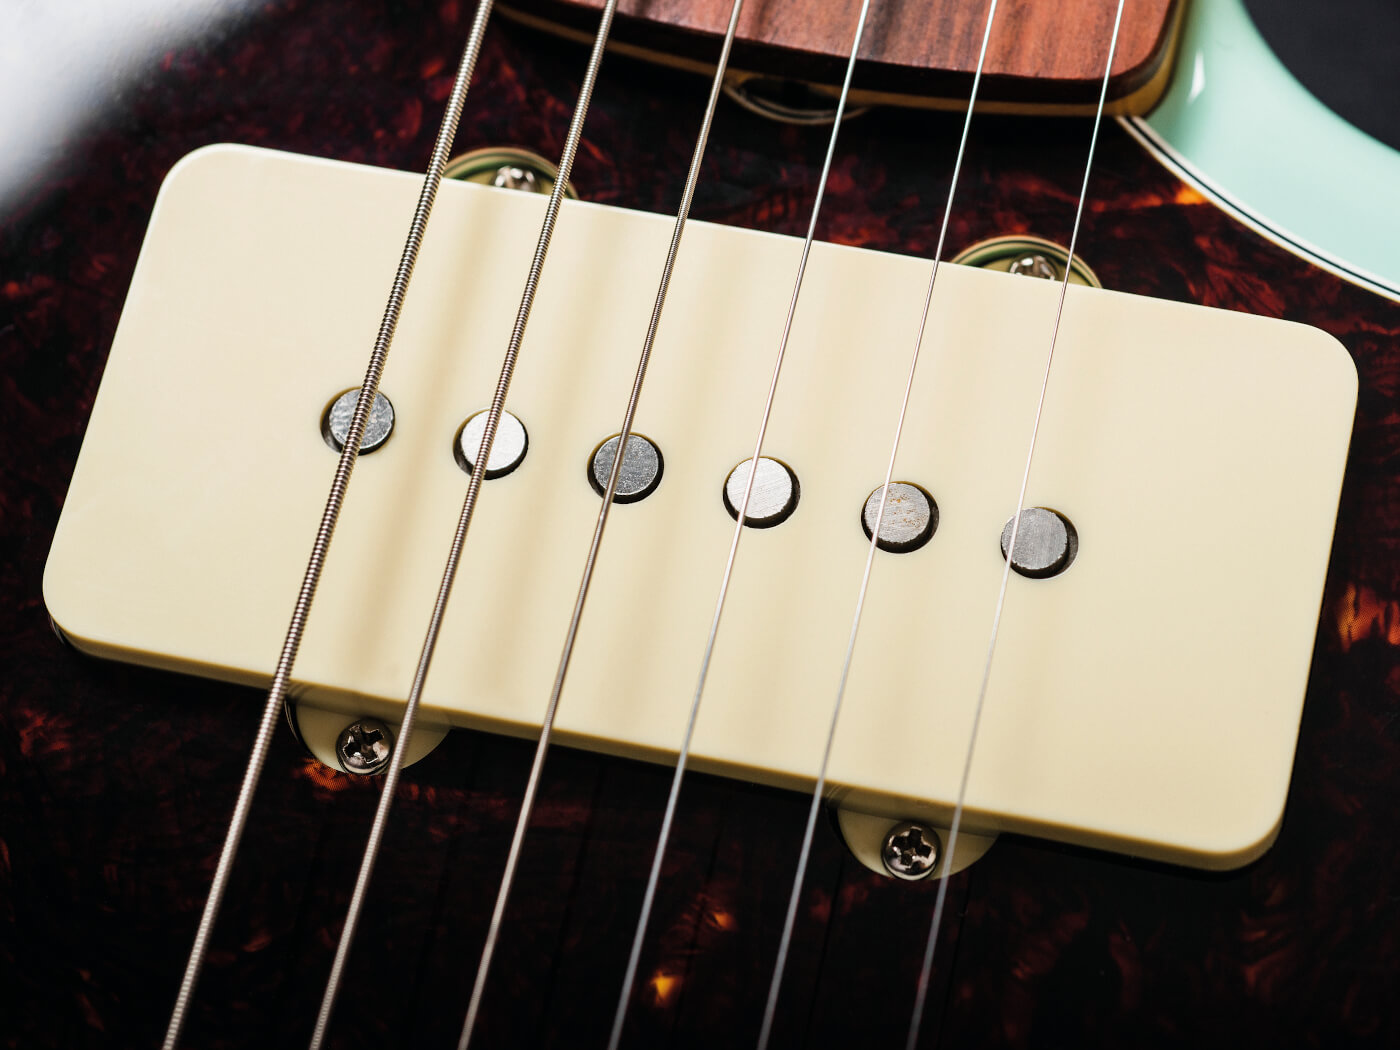 Fender Vintera 60s Jazzmaster humbucker close up